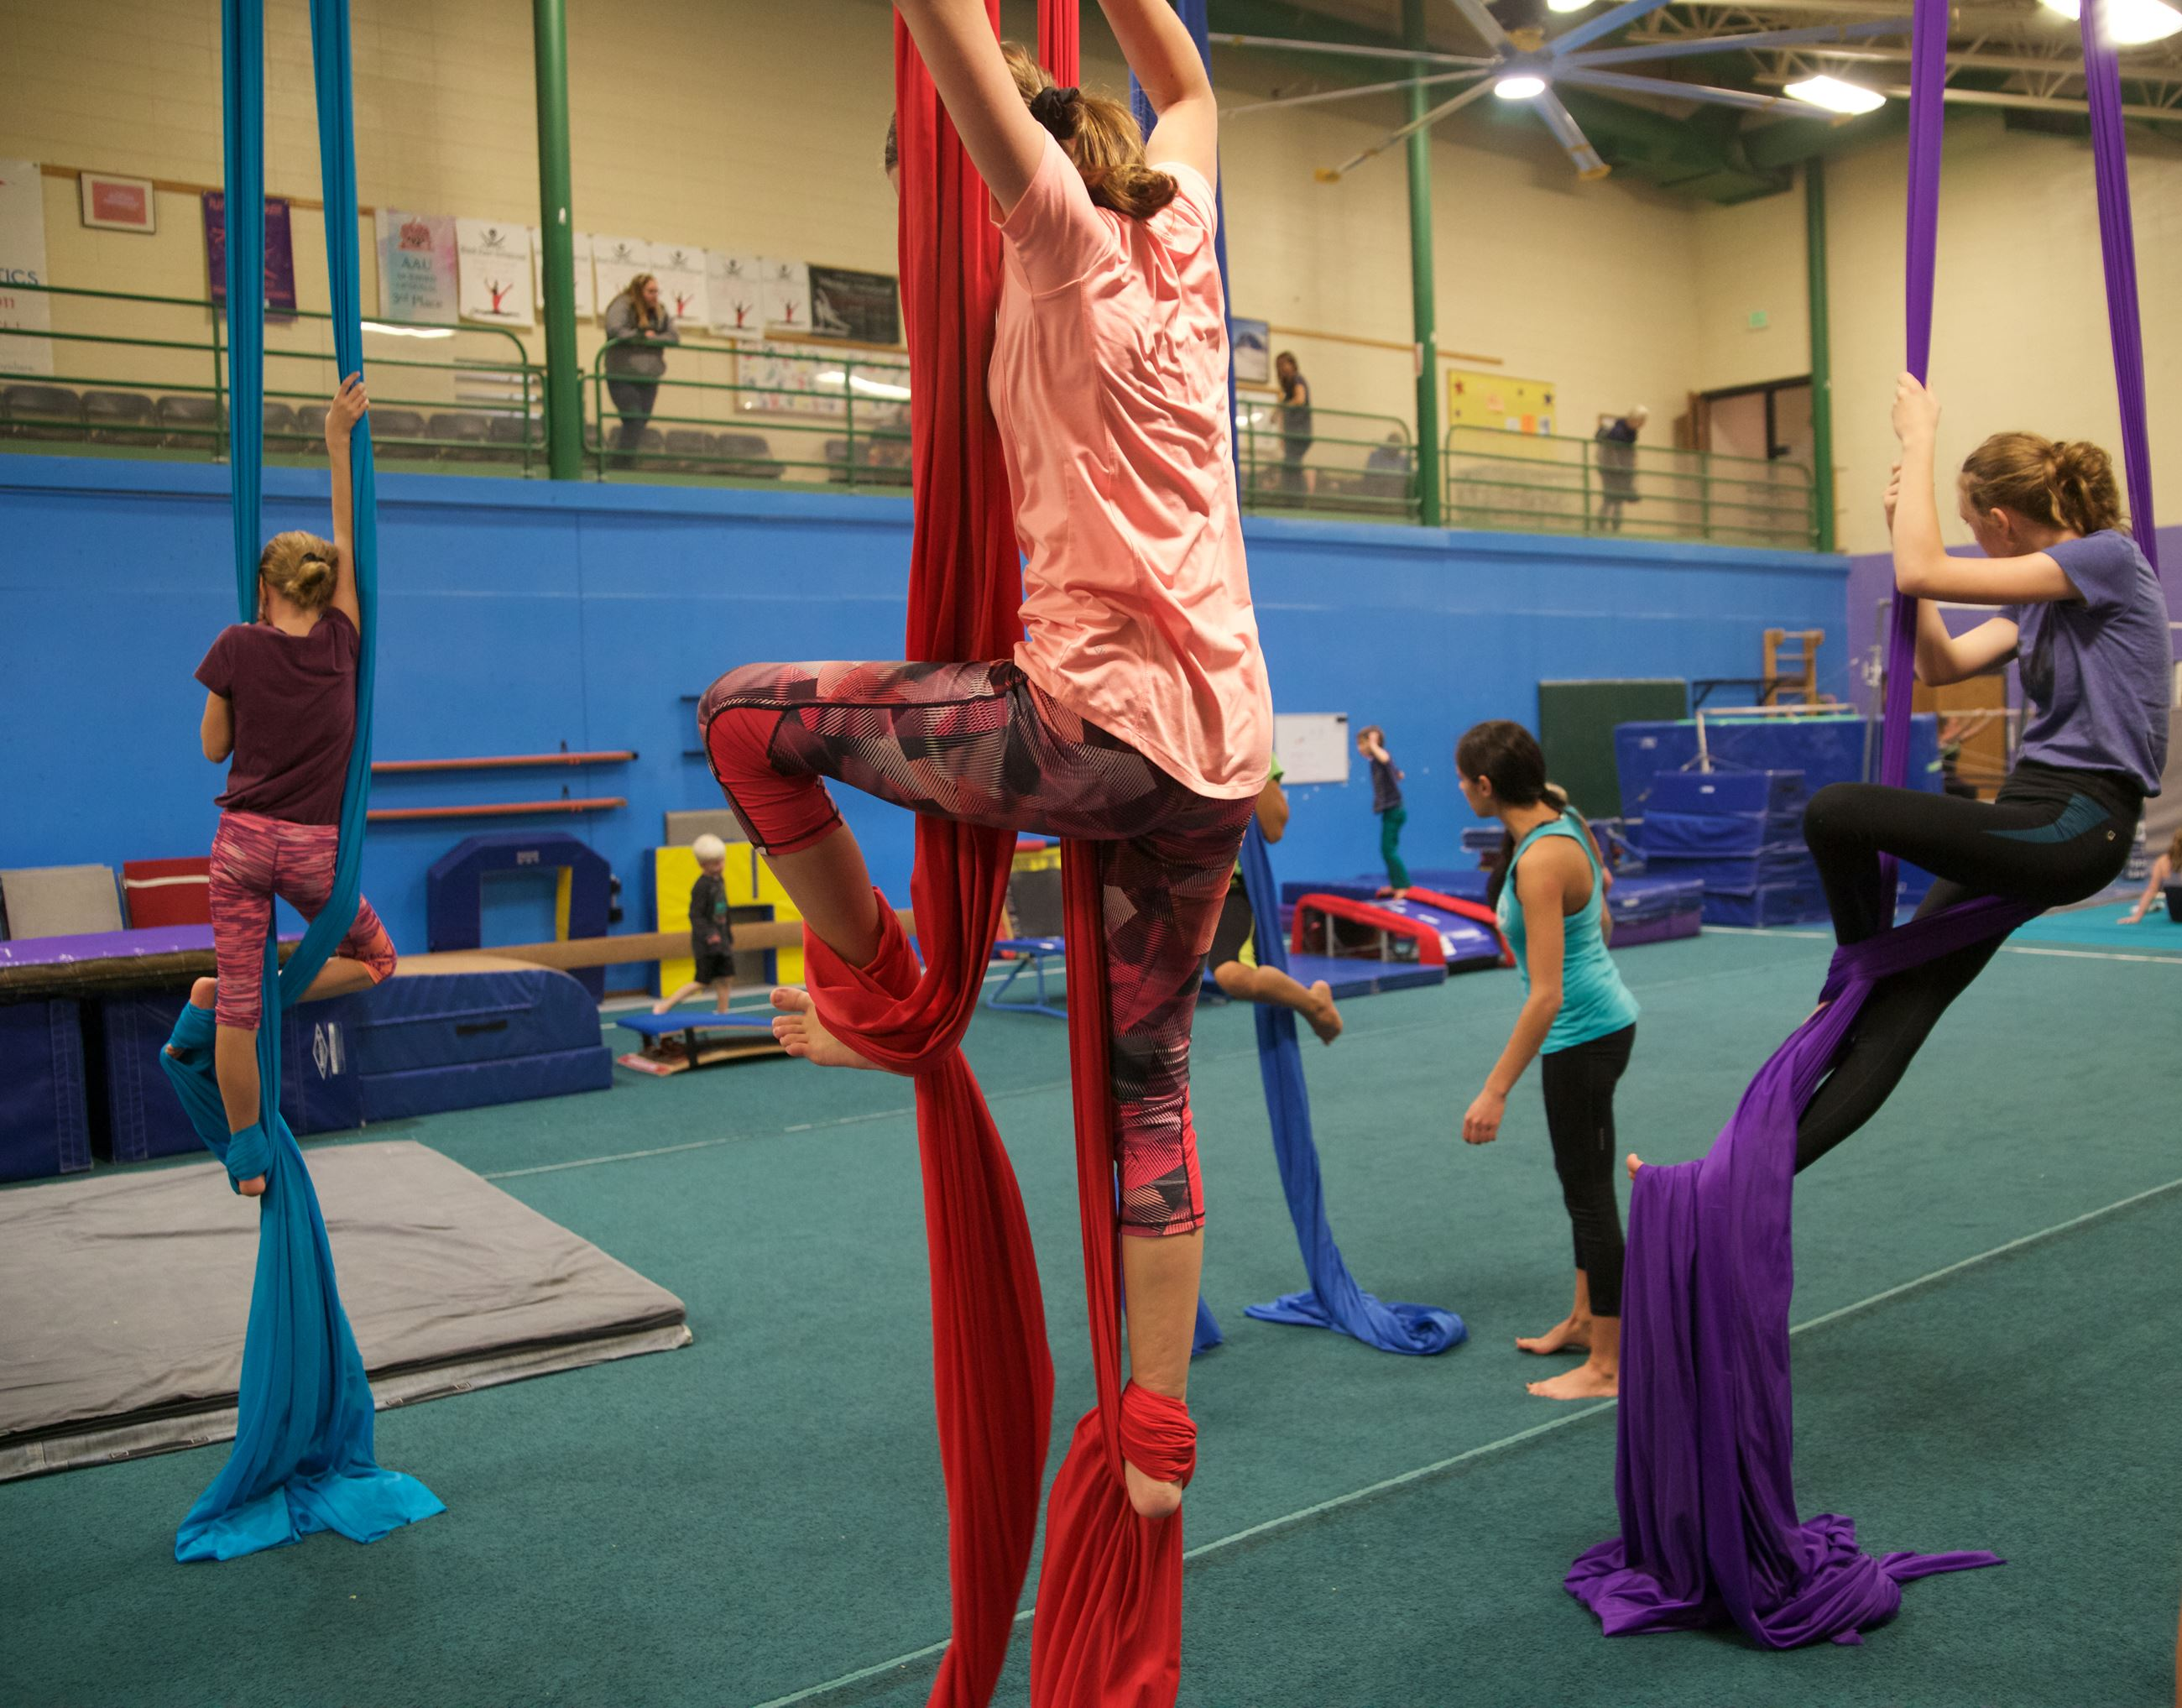 Girls Practicing Aerial Fabric Exercises